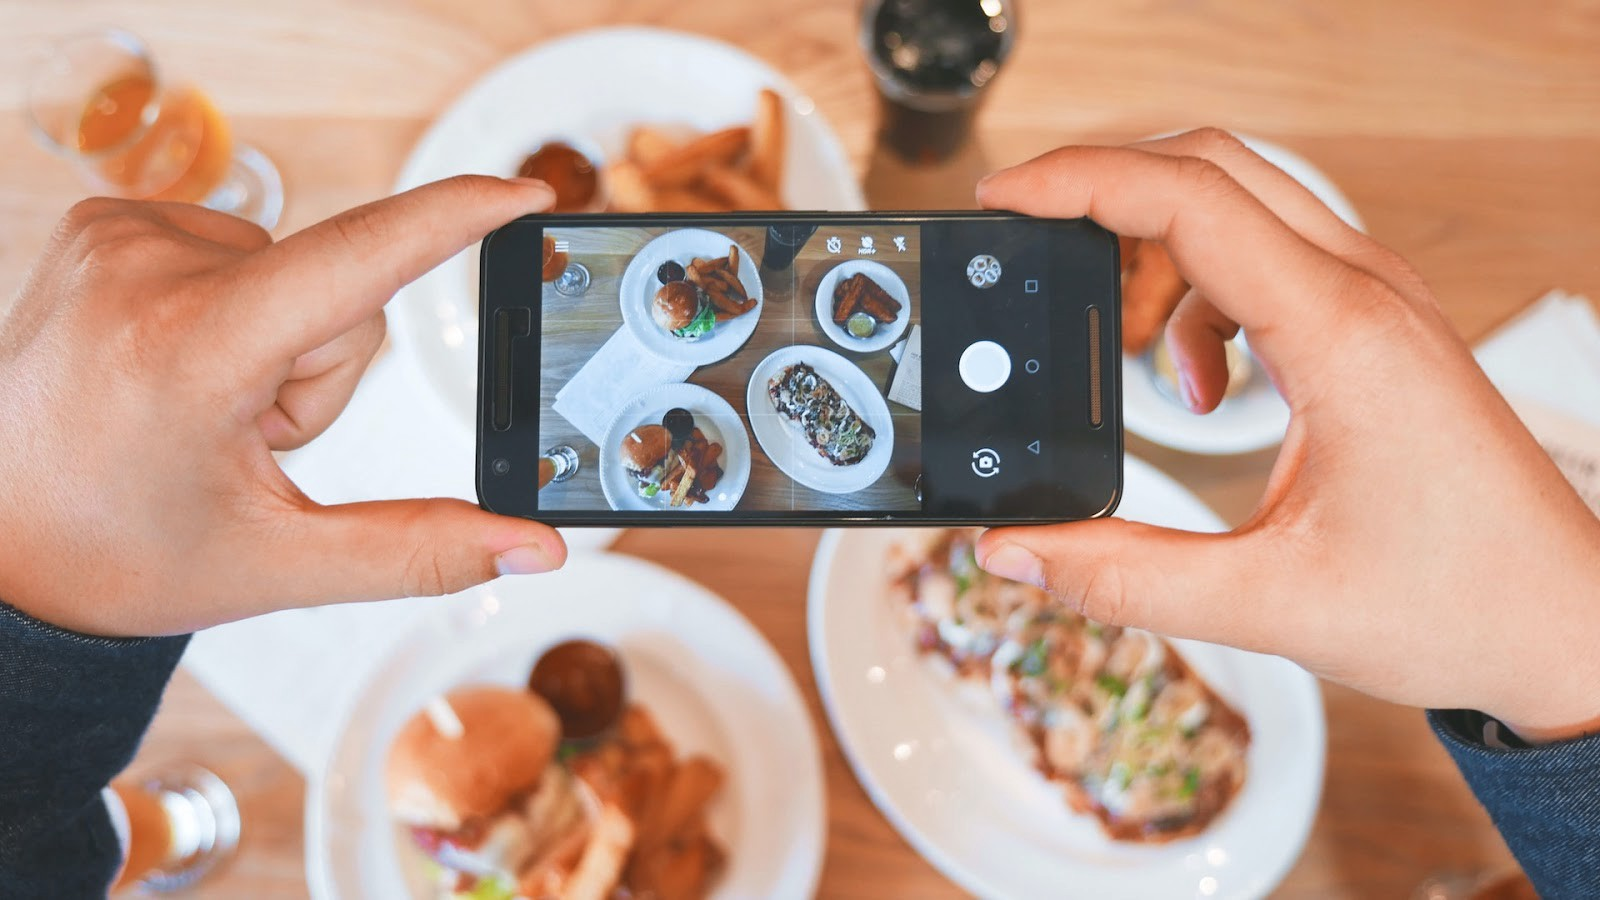 A person holds a camera phone on a Western meal about to take a photo